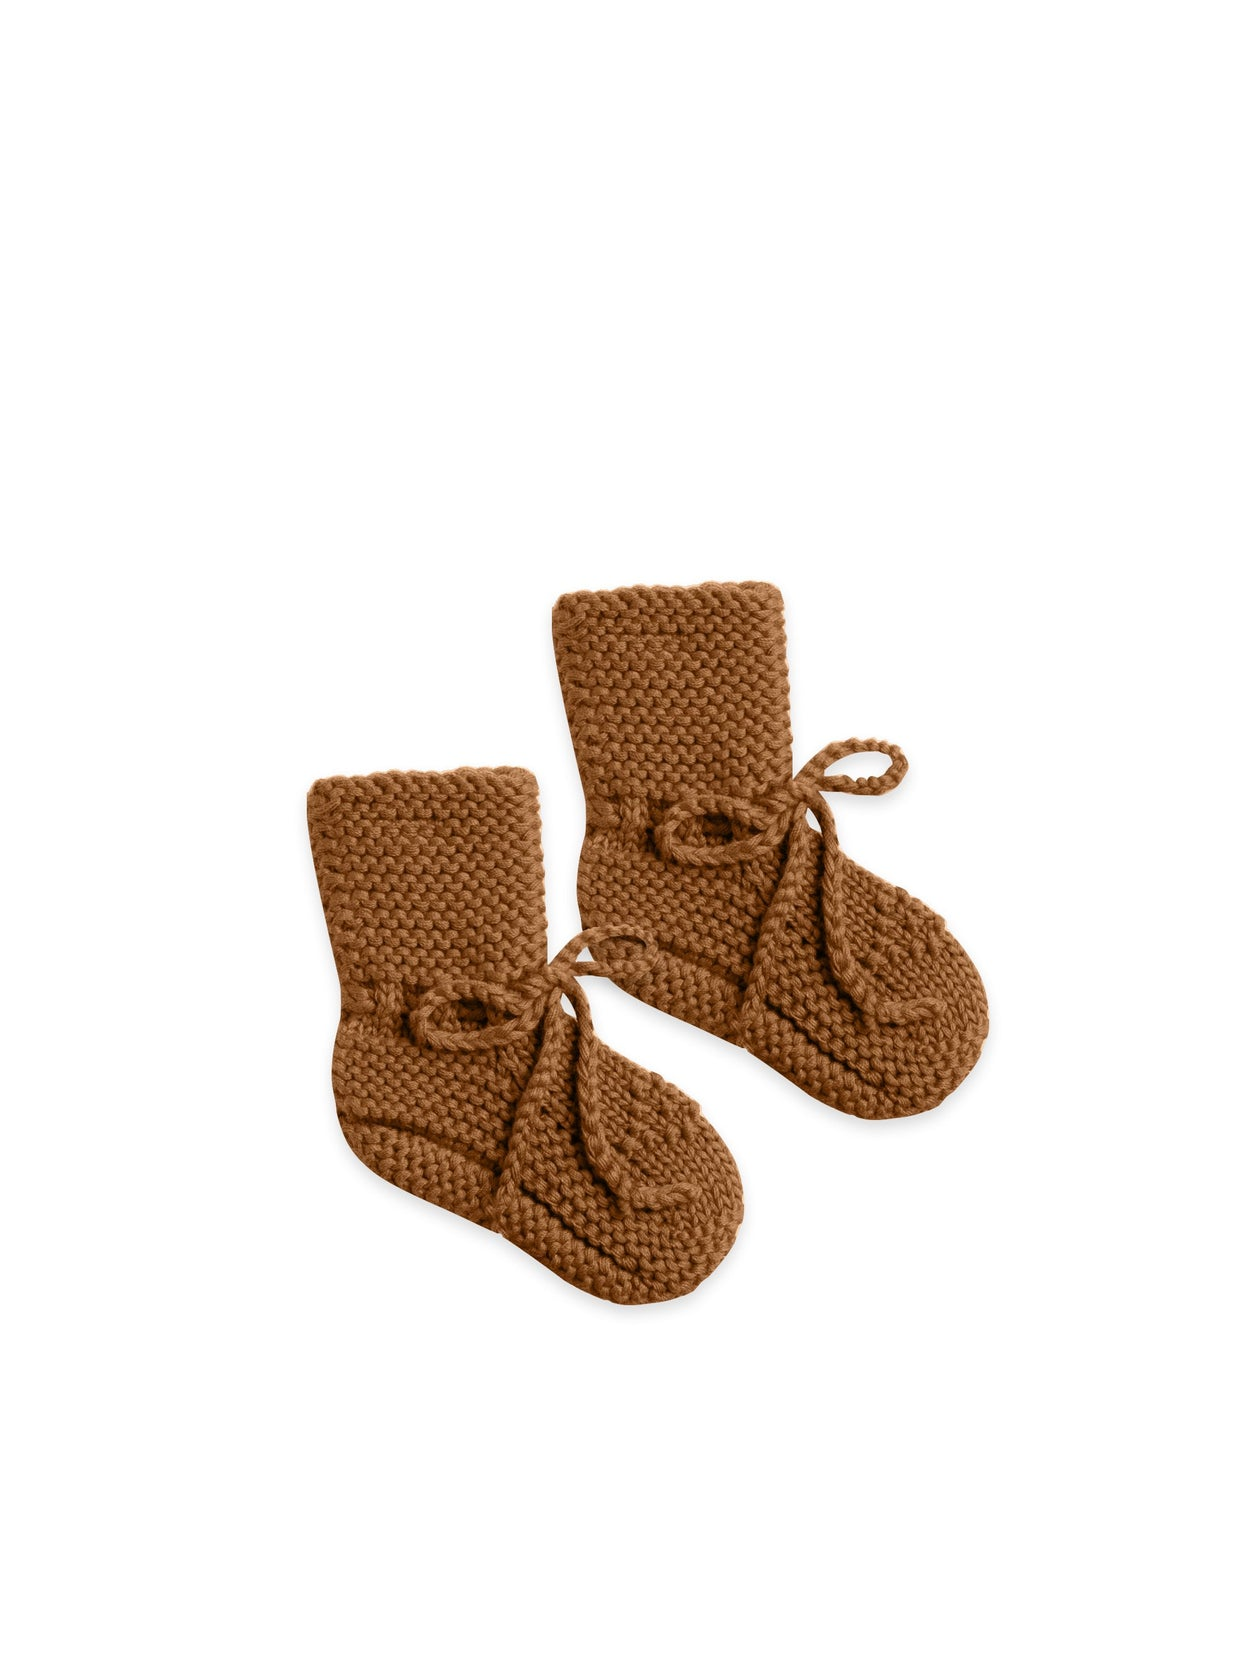 Quincy Mae Knit Booties Walnut